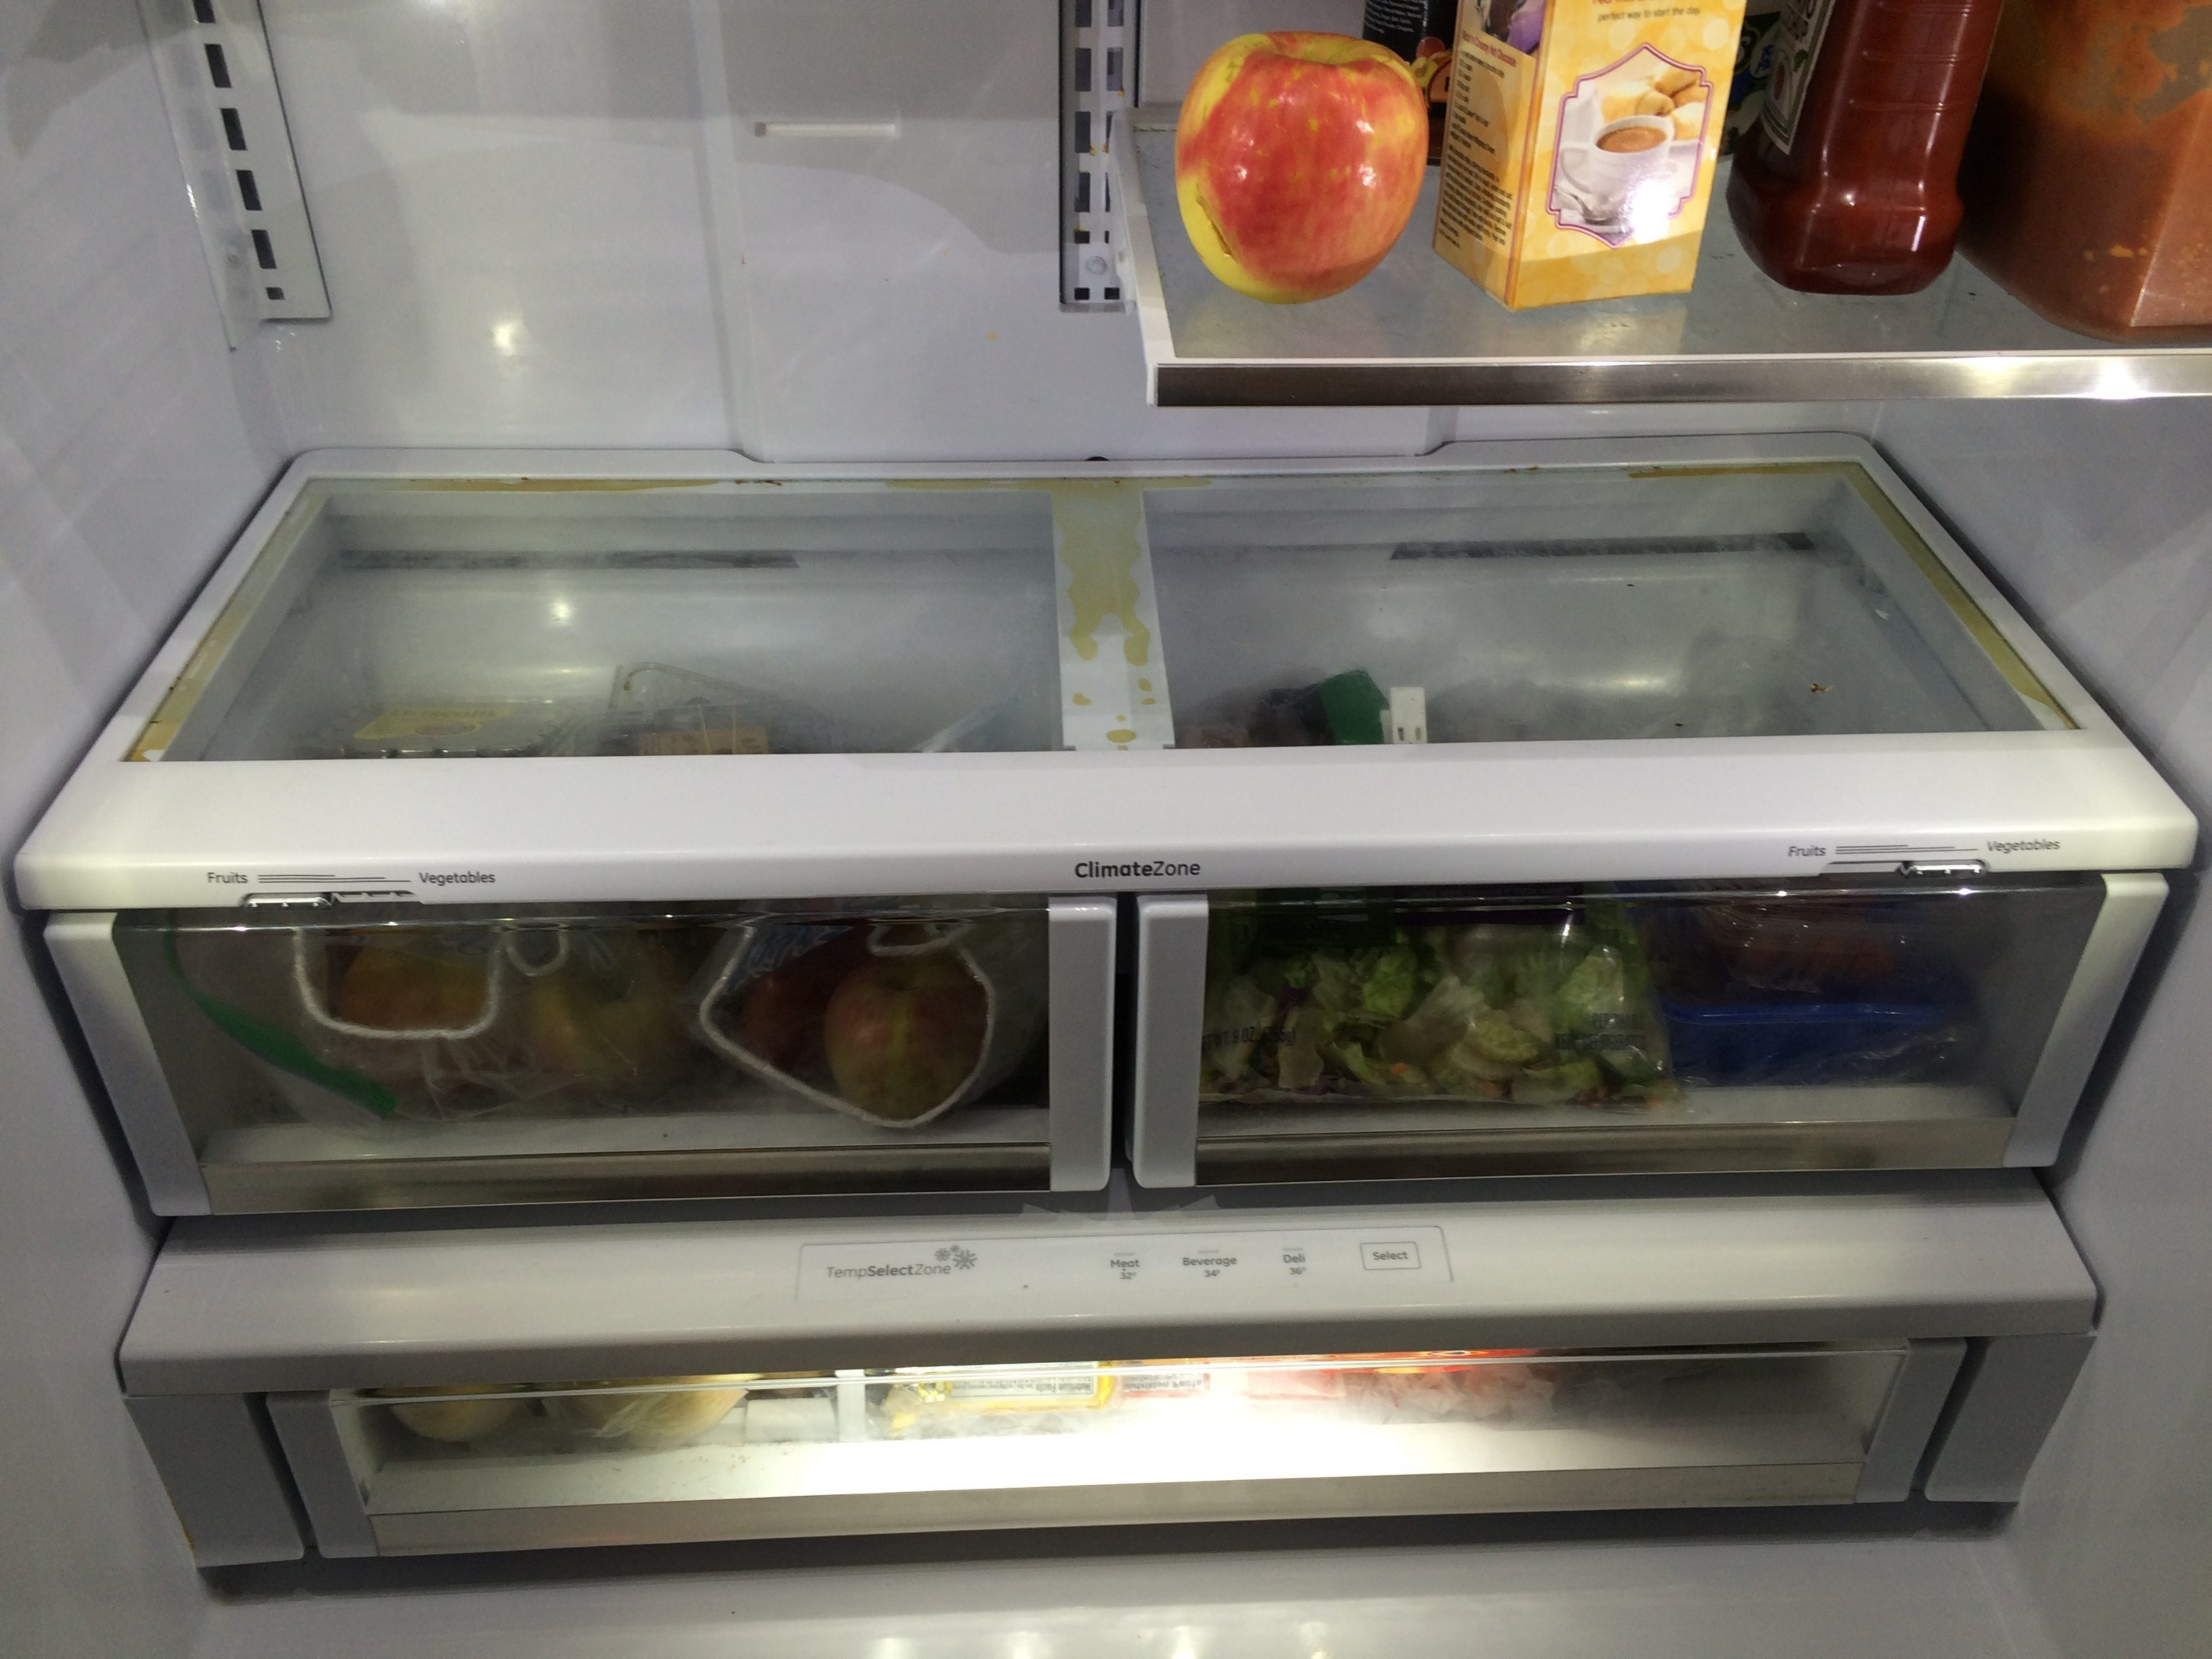 top 1 568 complaints and reviews about ge refrigerators page 3 we purchased this ge cafe refrigerator along 6 other ge appliances for our new custom built home they were recommended to us by our contractor